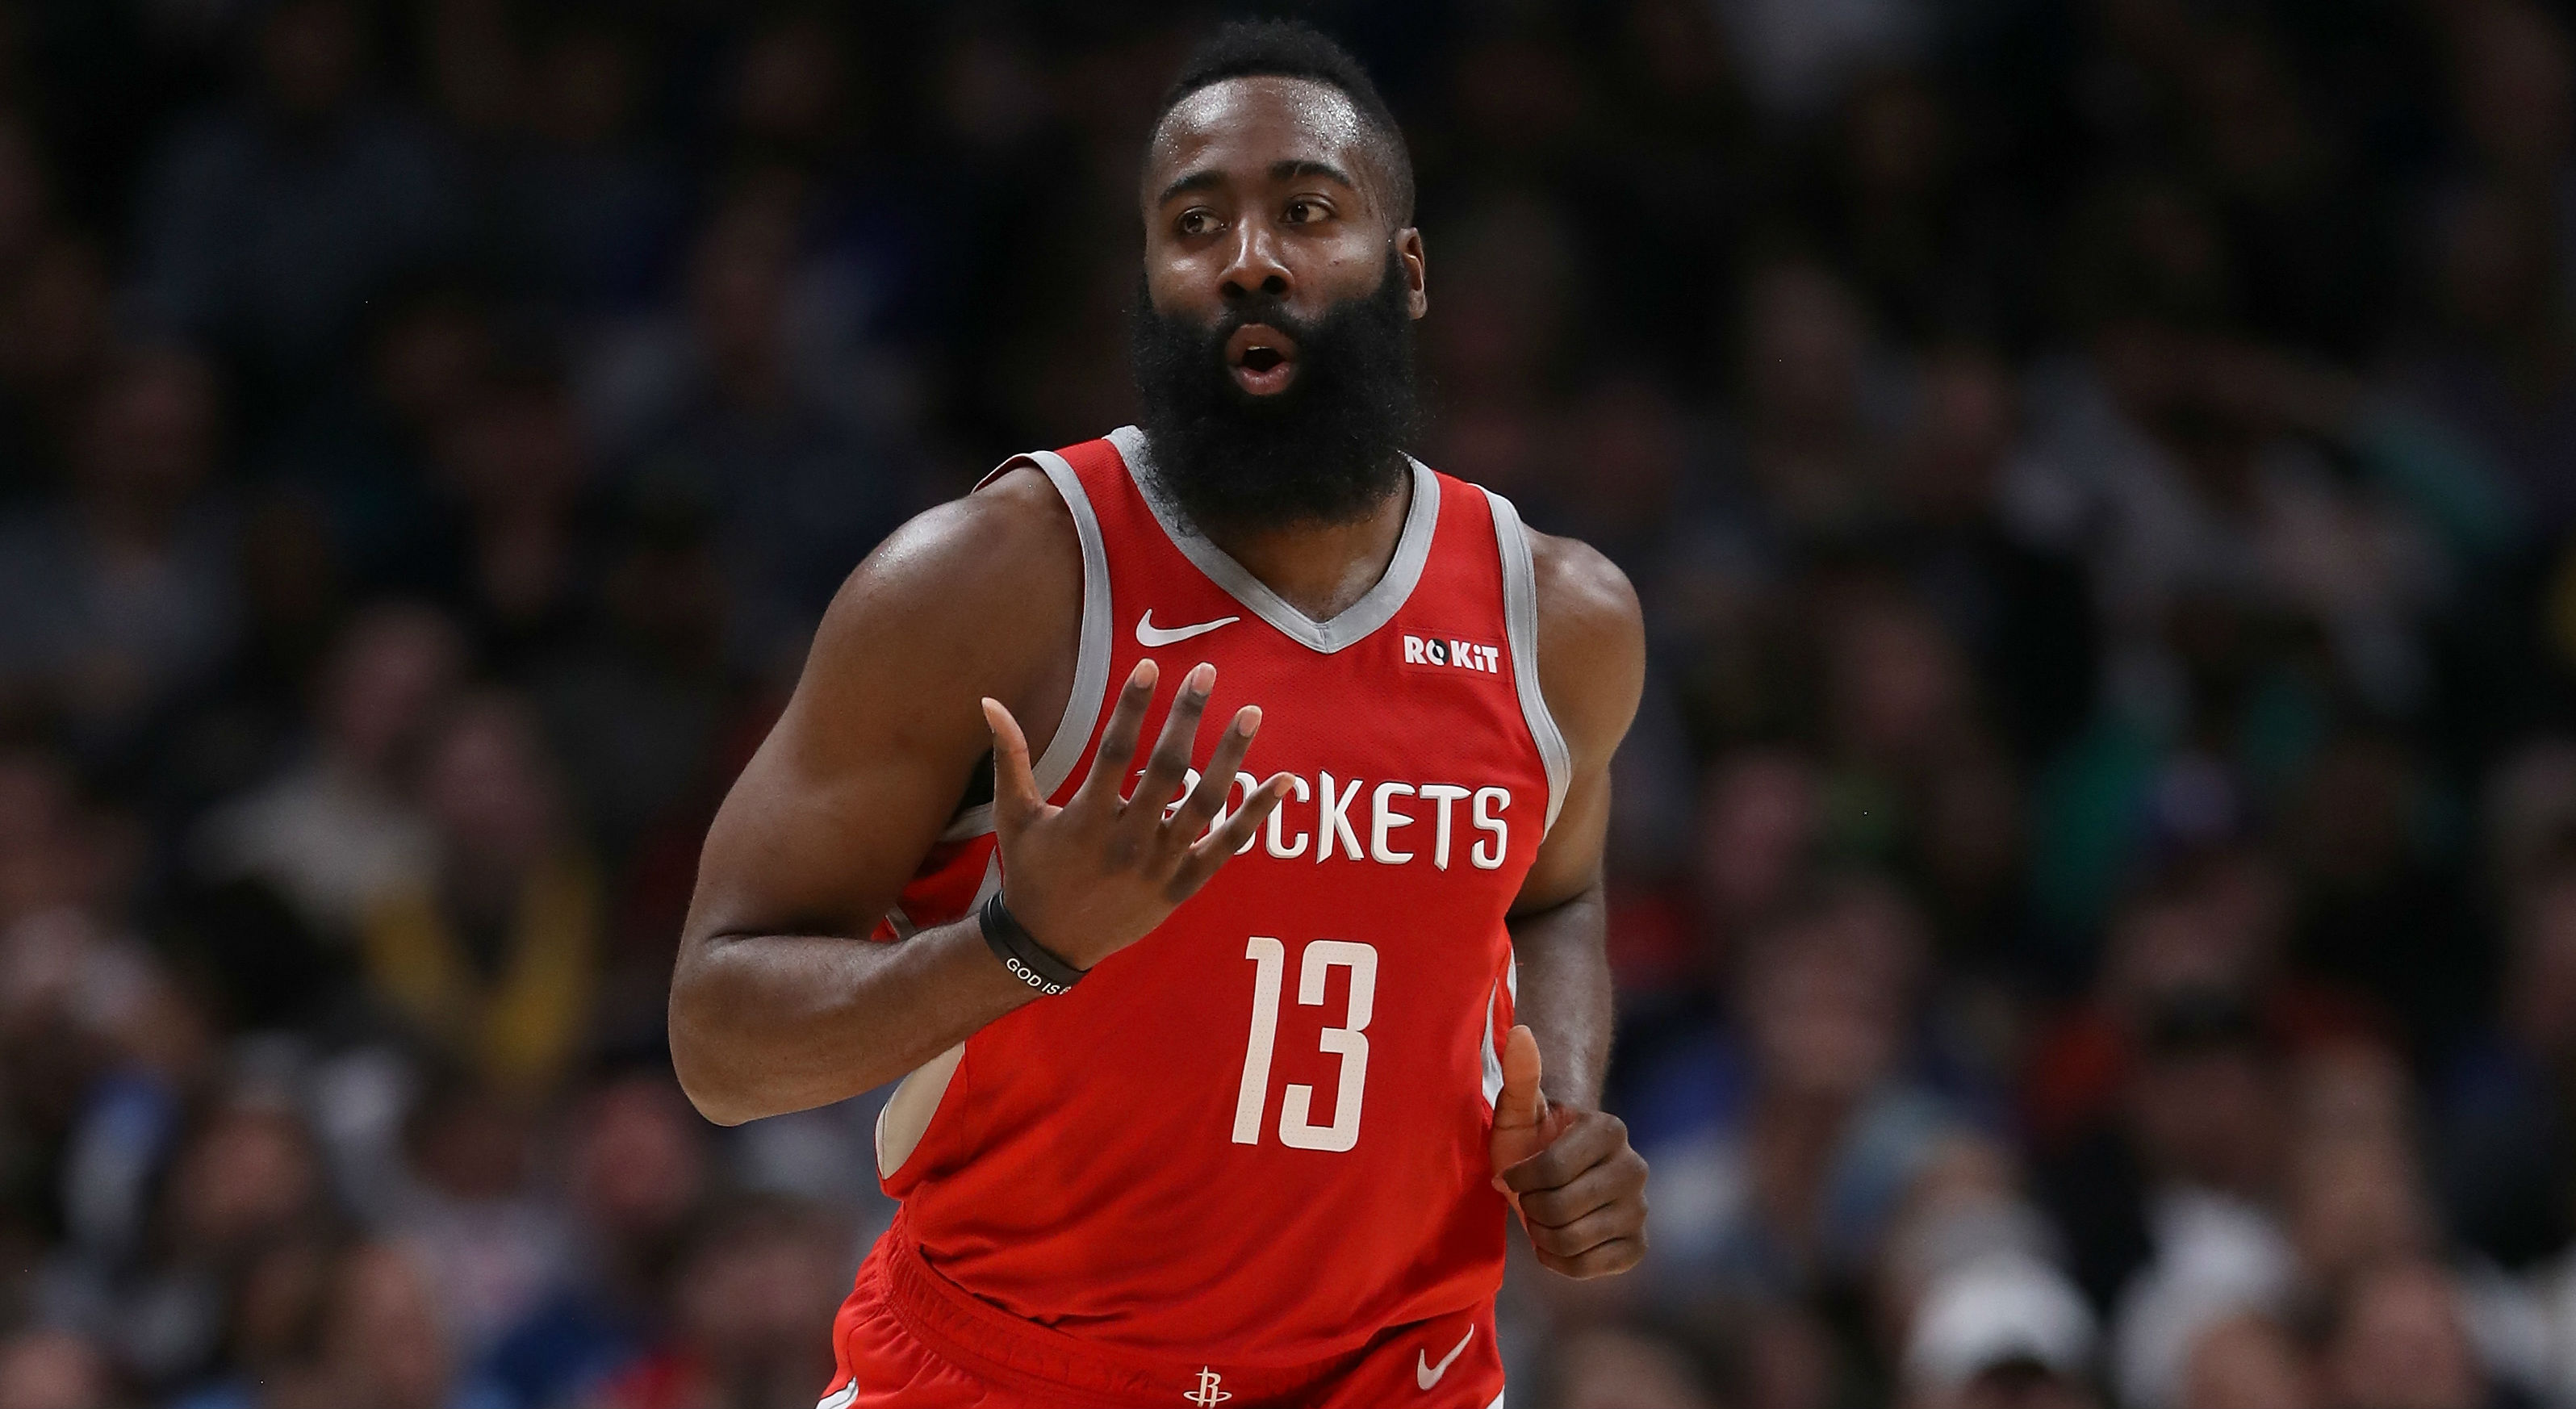 Rockets GM says Harden could be best offensive player ever